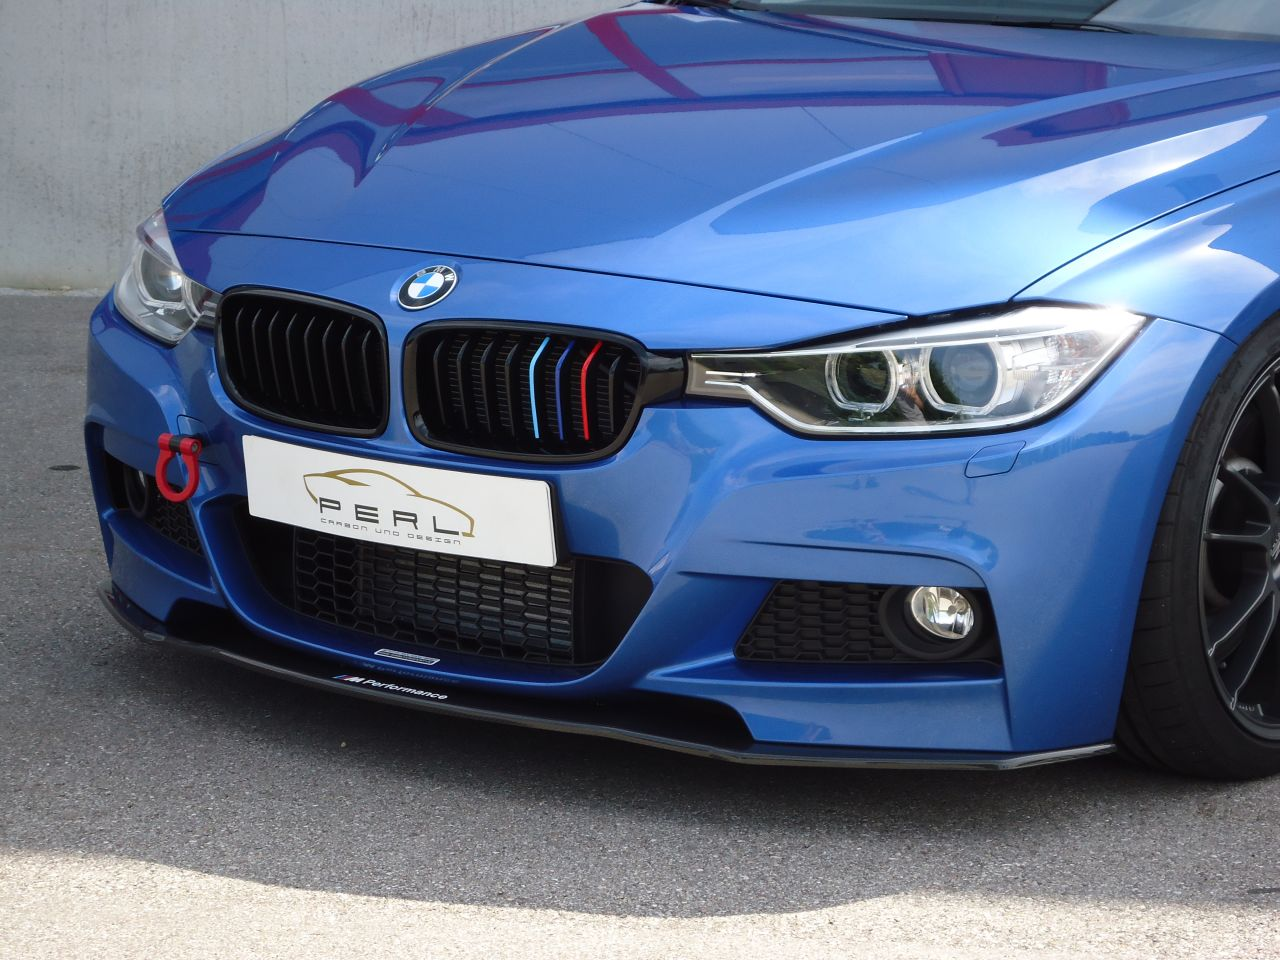 Bmw 3er touring m paket images - Carbon Sword Bmw 3 Series F30 F31 M Package Bmw 3 Series Spoiler Bmw Perl Carbon Quality Through Experience